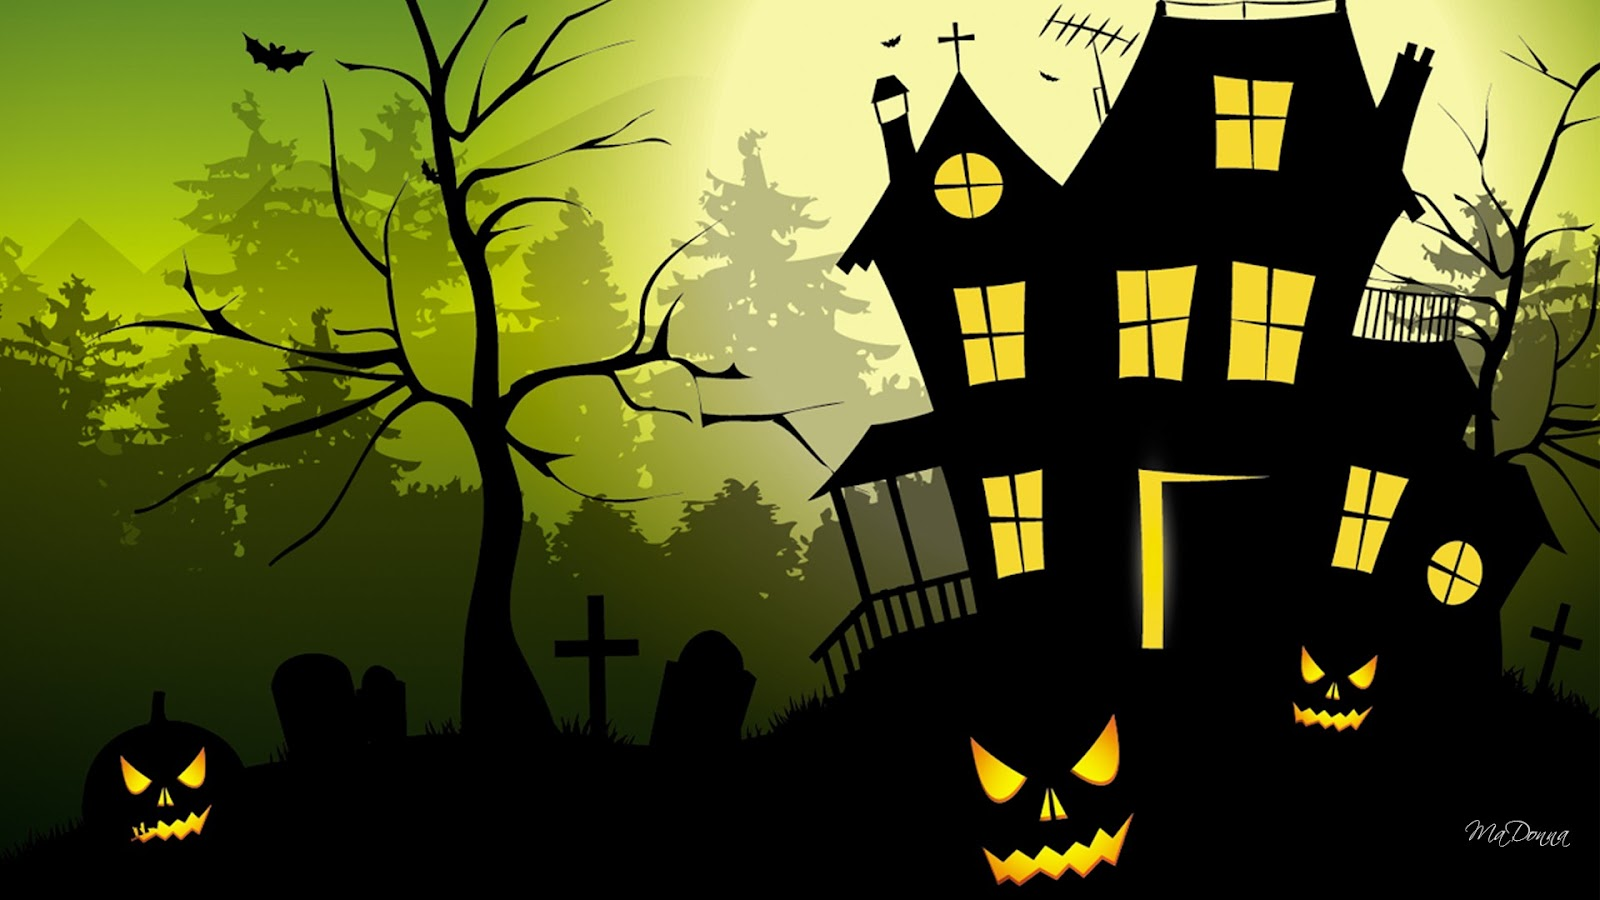 Awesome Galleries: Halloween Desktop Wallpaper (Page 6)